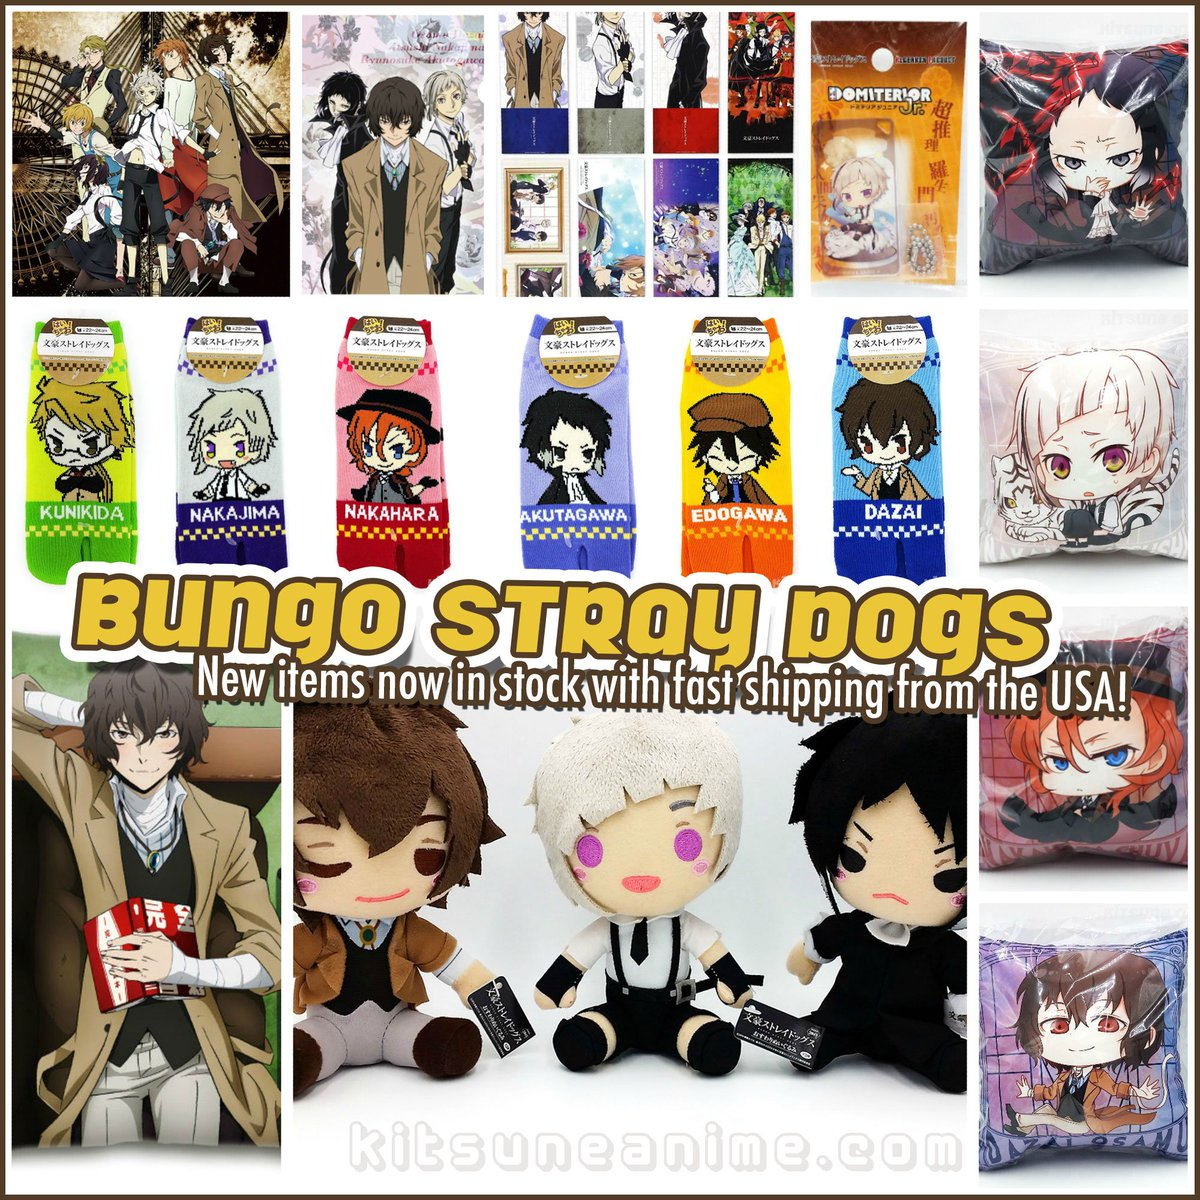 ゜゚・☆ new official bungo stray dogs merchandise is here http stores ebay com kitsune anime bungo stray dogs i html fsub14149252014